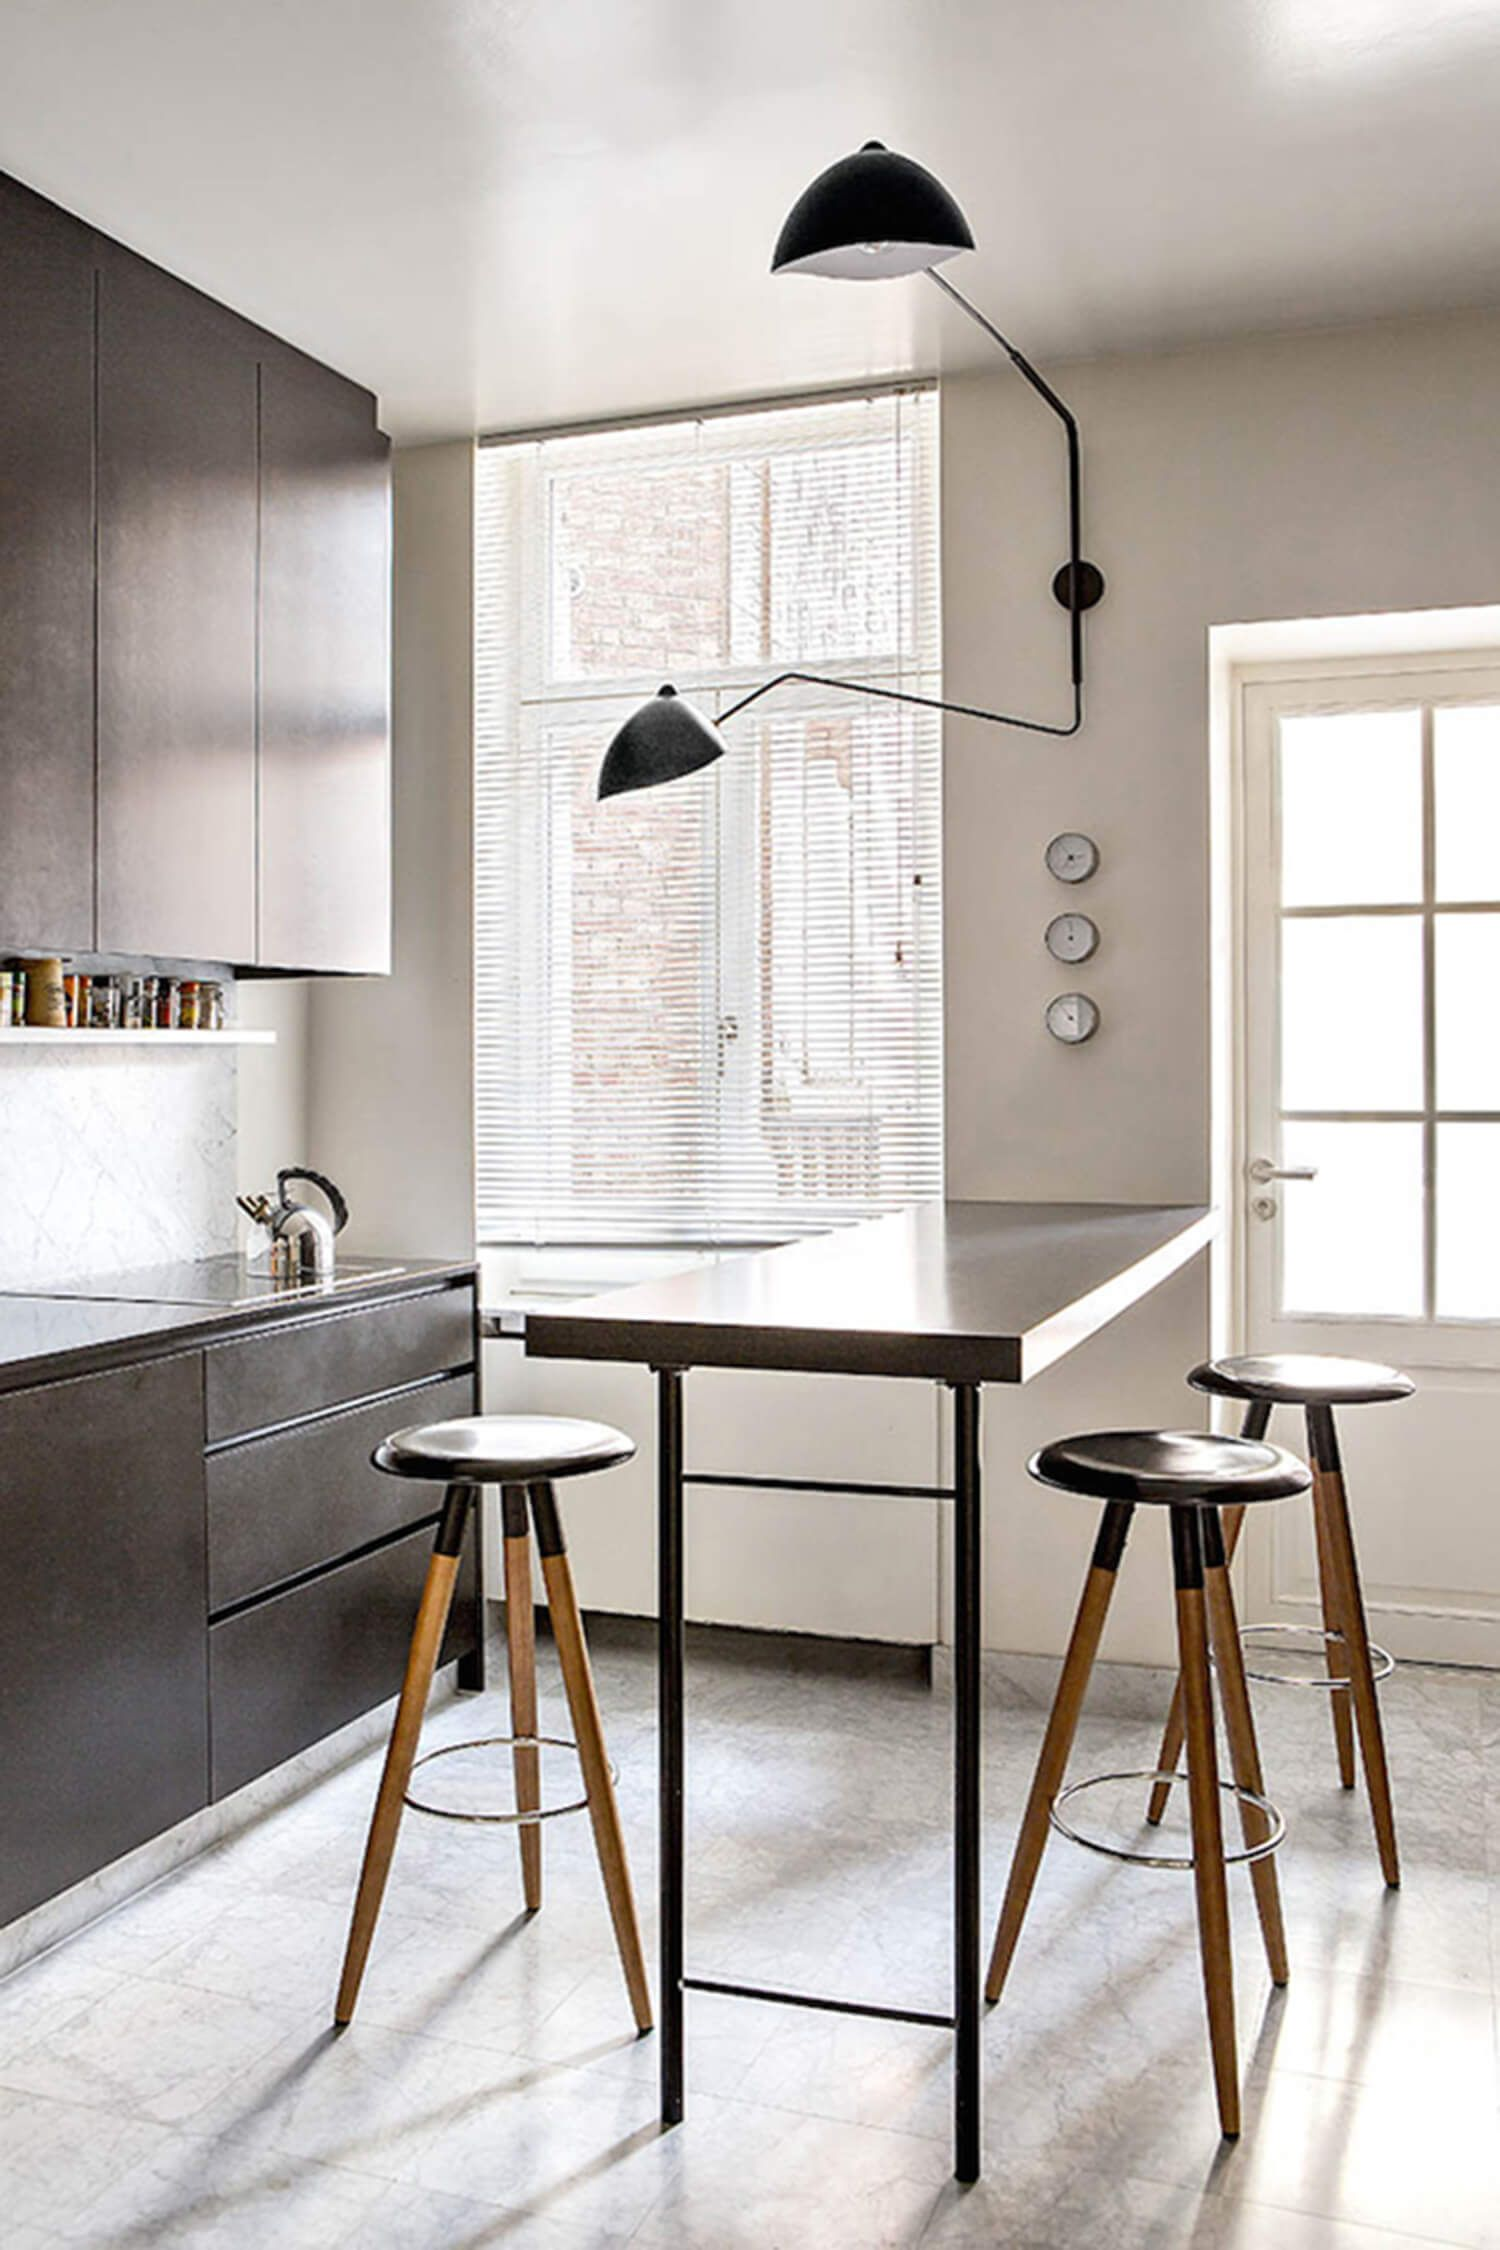 Make Your Kitchen Feel More Open With This Magic Design Move | Küche